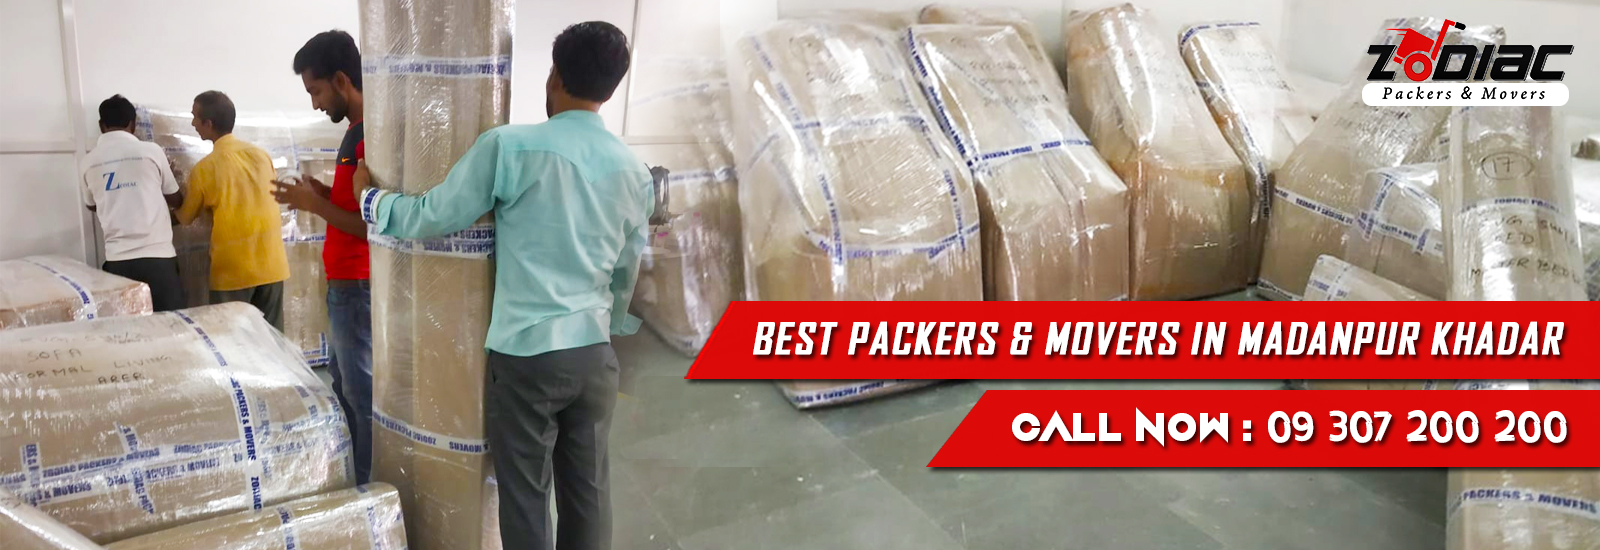 Packers and Movers in Madanpur Khadar